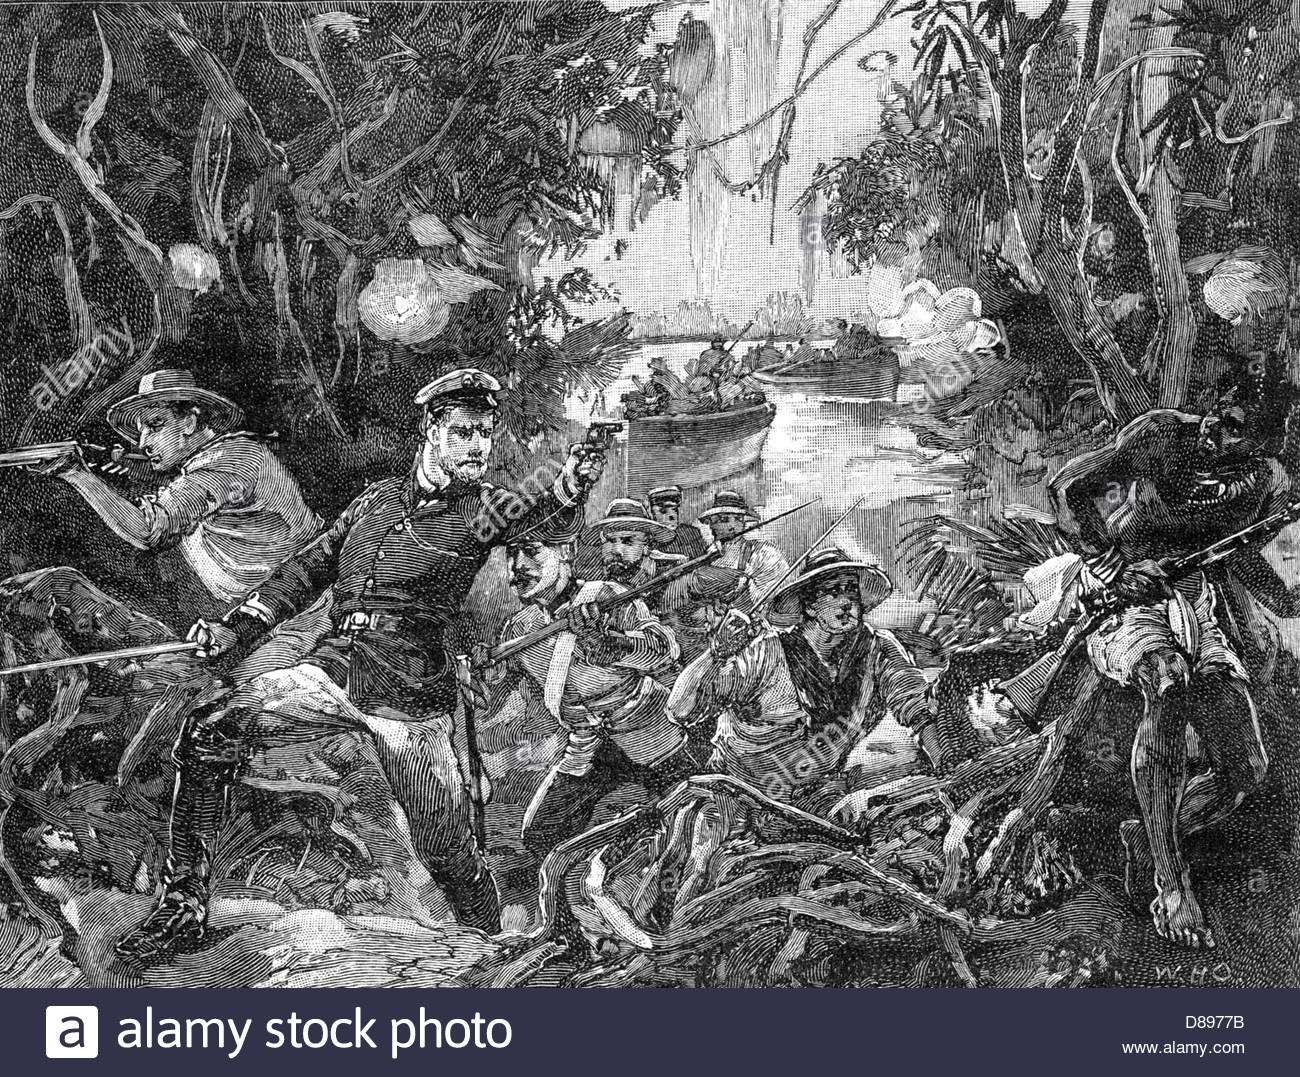 DELAGOA BAY DISPUTE British Naval party attacks pirates on the River Congo  in 1875 after they had fired at a British schooner